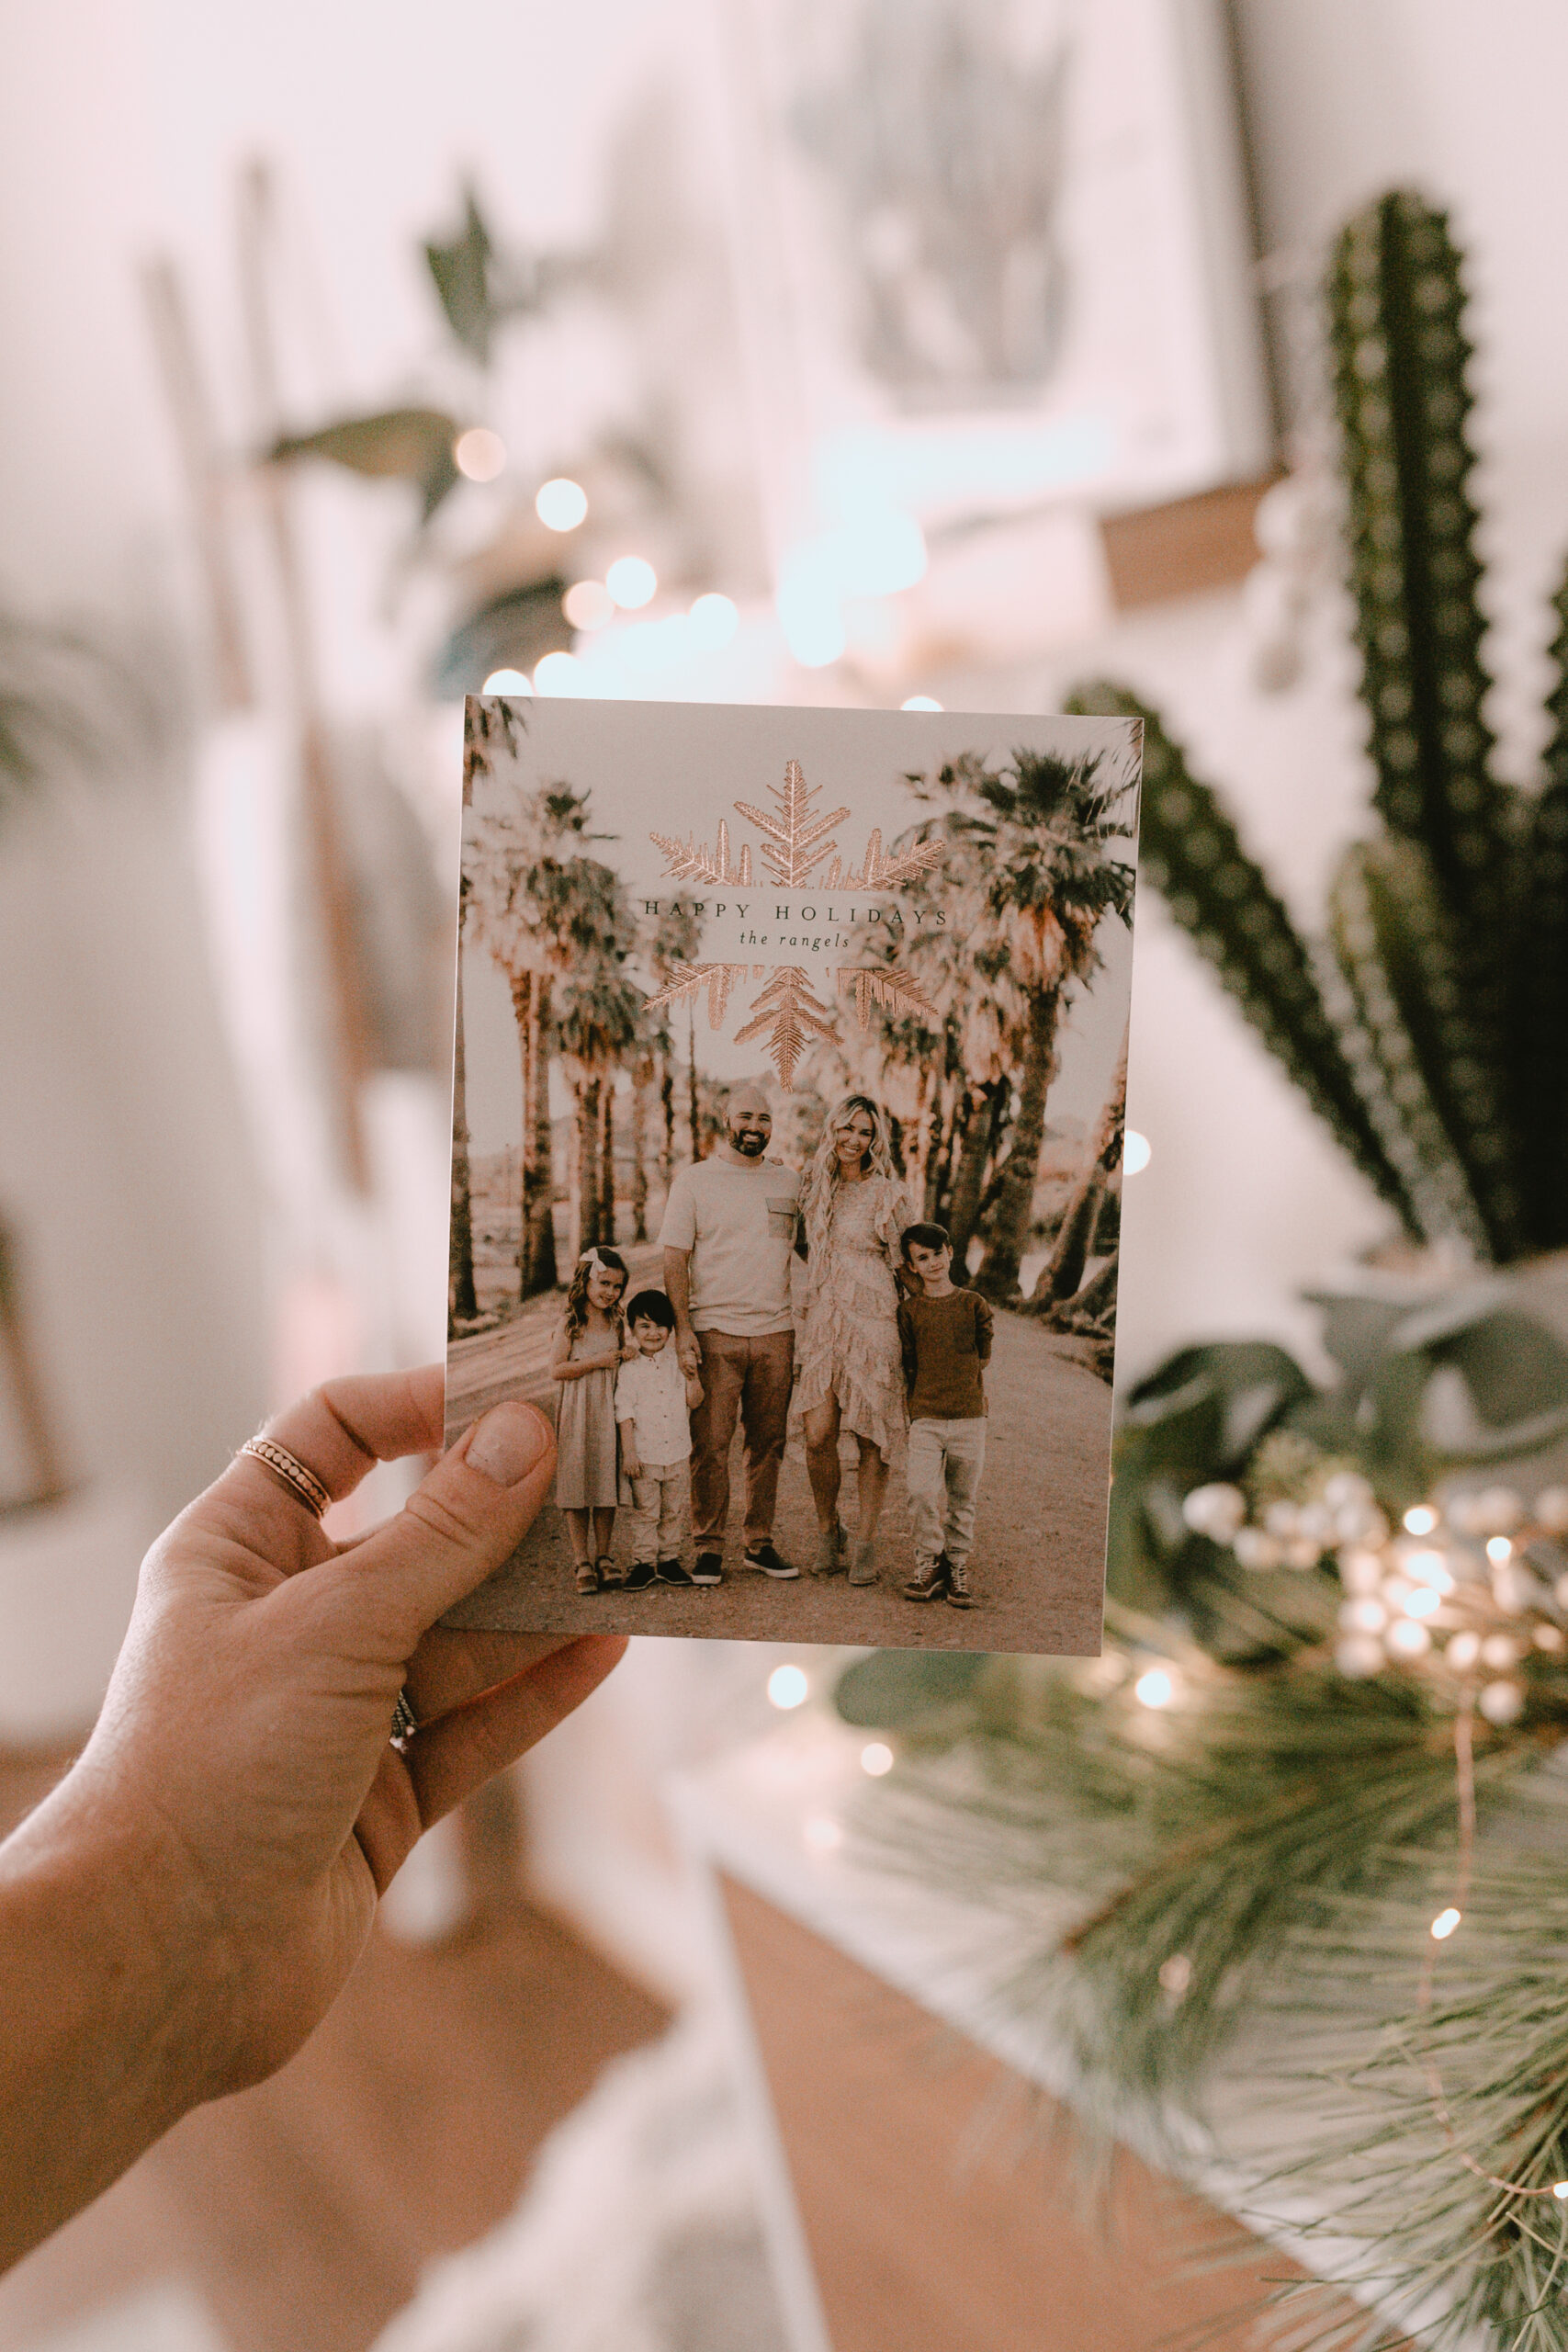 family photo holiday cards with minted. #minted #holidaycards #familyphotos